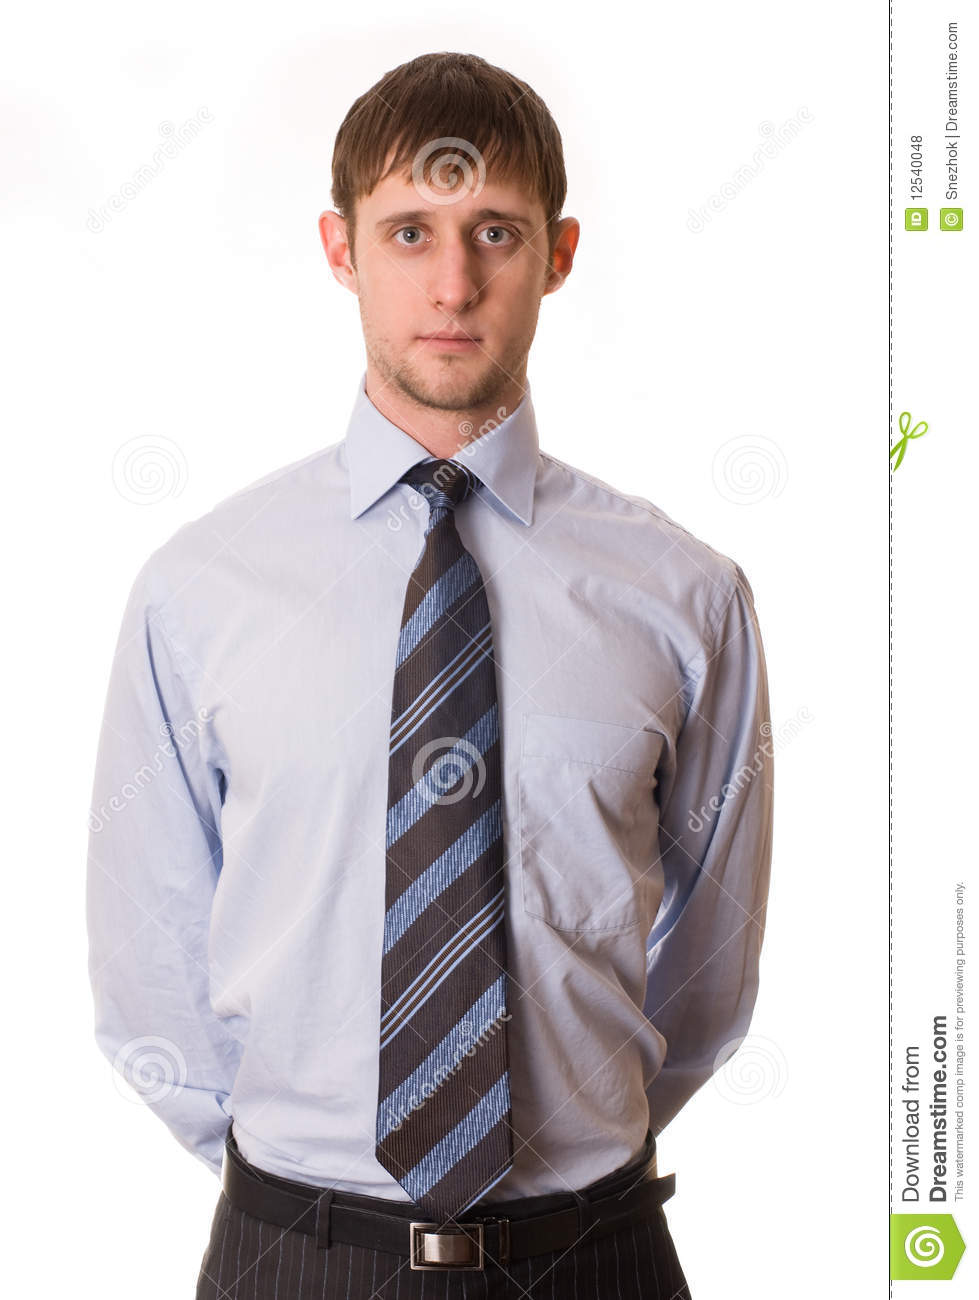 young-man-shirt-tie-12540048.jpg